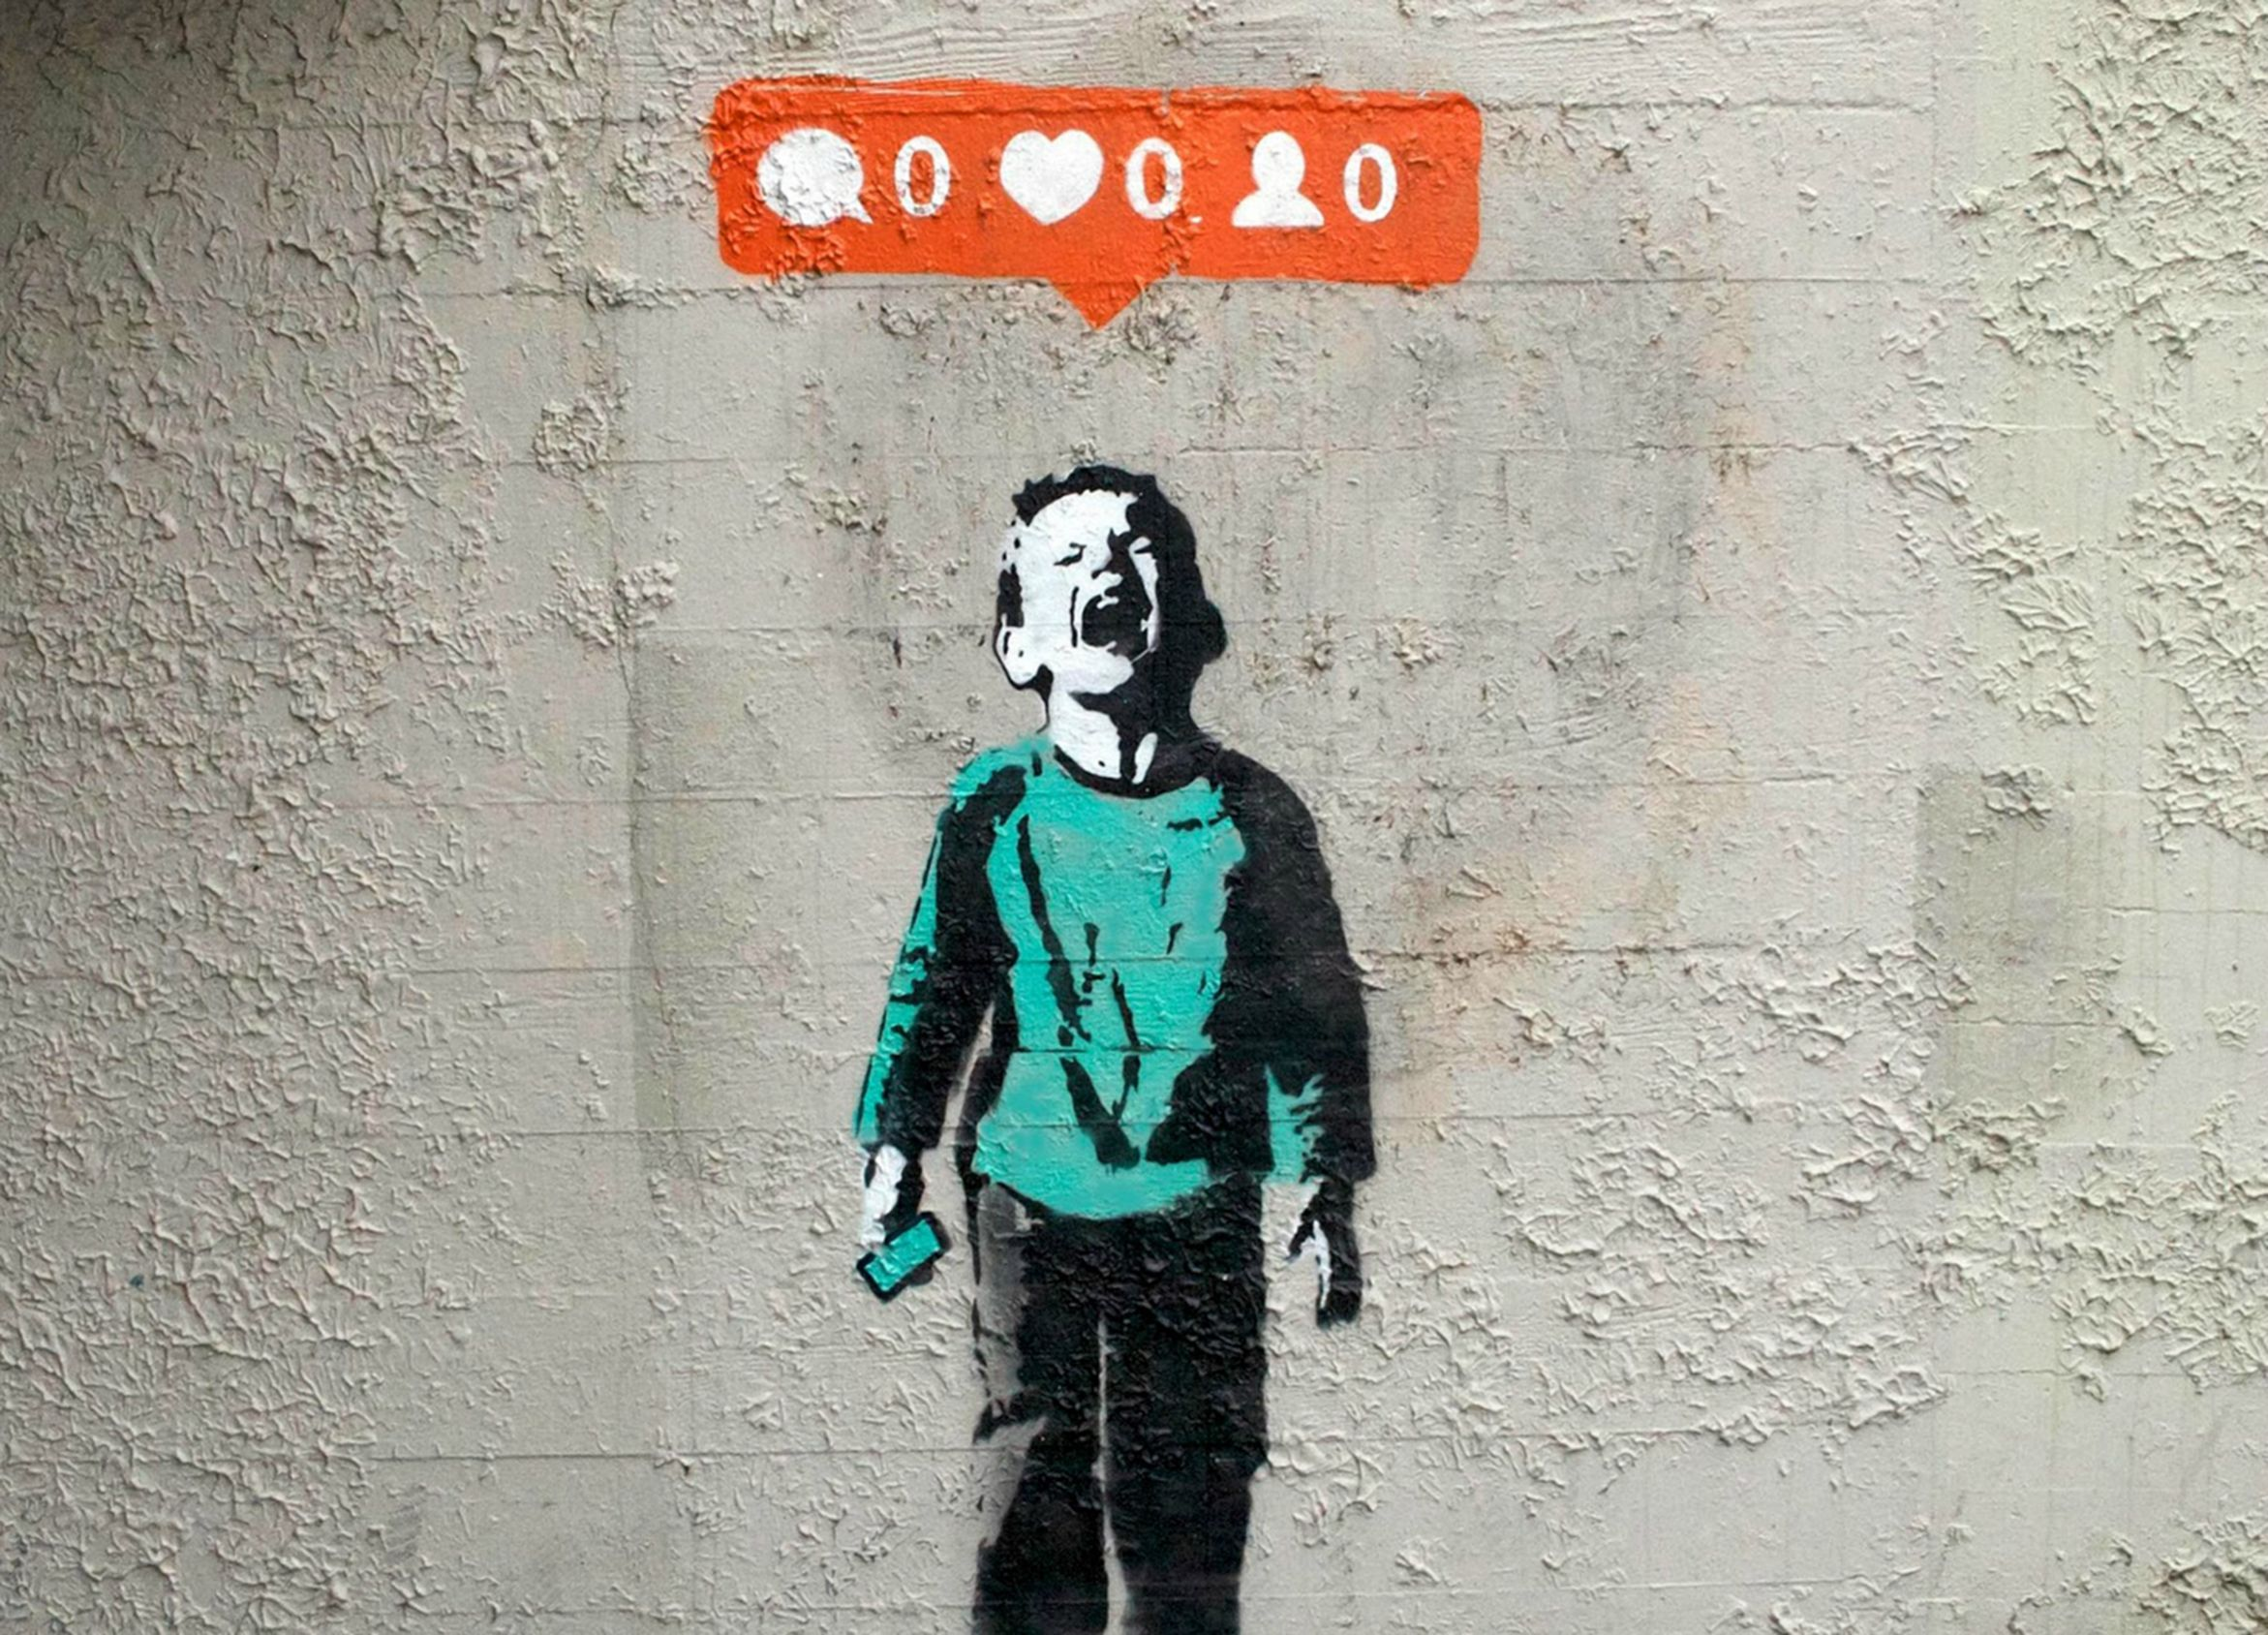 banksy and steve jobs banksy banksy is a contemporary graffiti artist known for his political activism unverified identity and satirical street art his dark humor and political